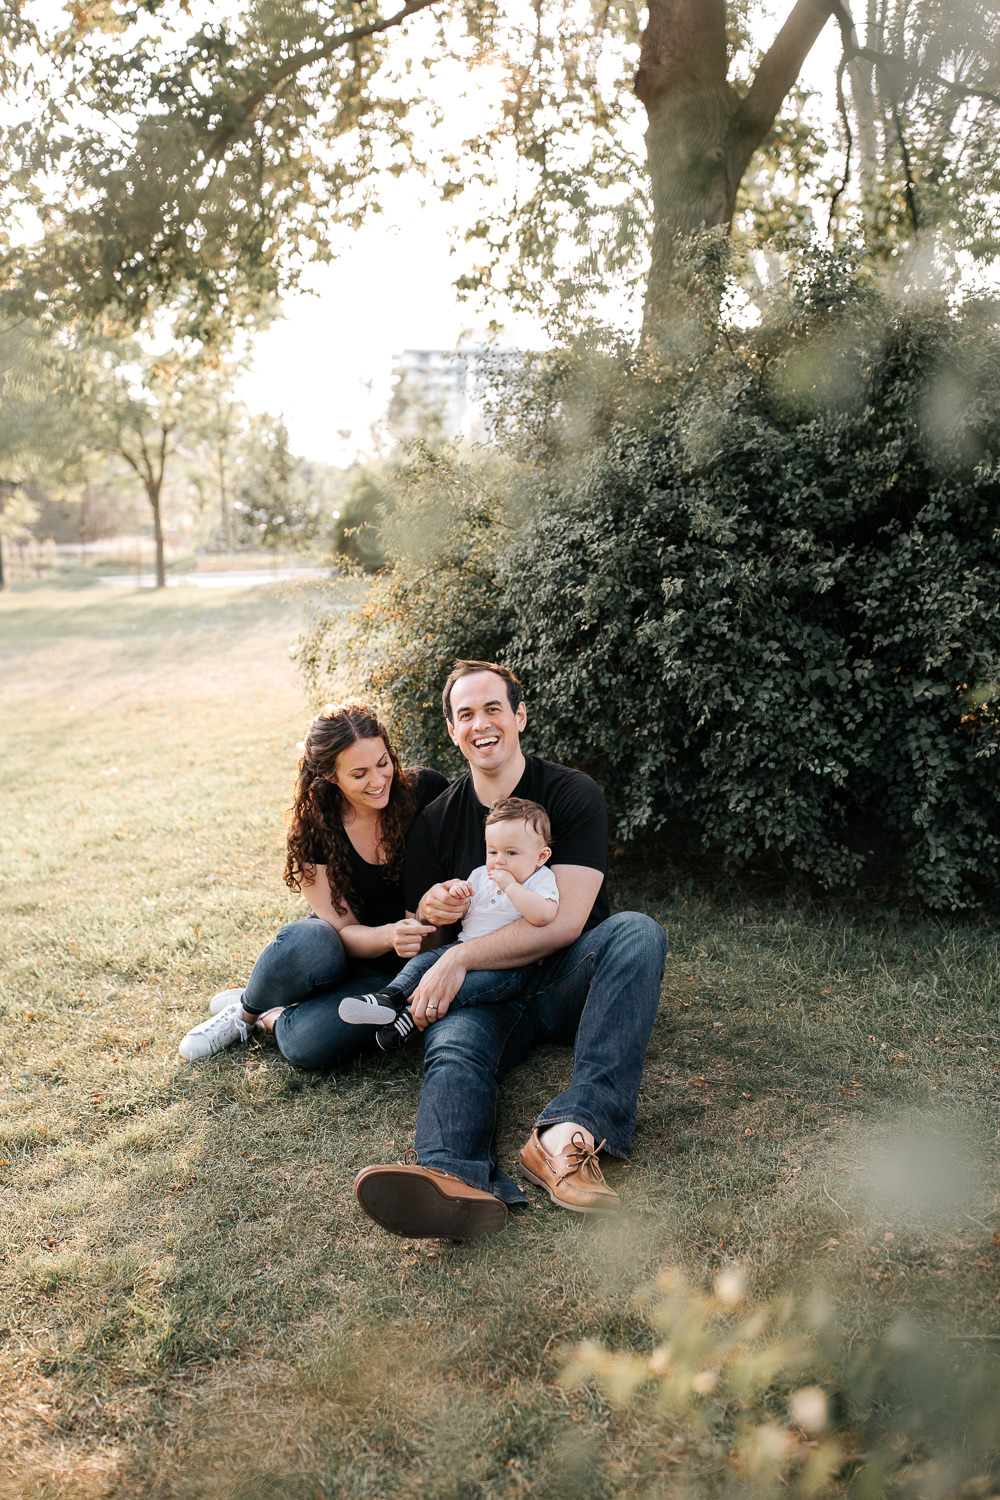 family of 3 sitting on ground in park, 9 month old baby boy with dark hair sitting in dad's lap chewing on hand, mom snuggled next to them, father laughing - Newmarket Lifestyle Photos